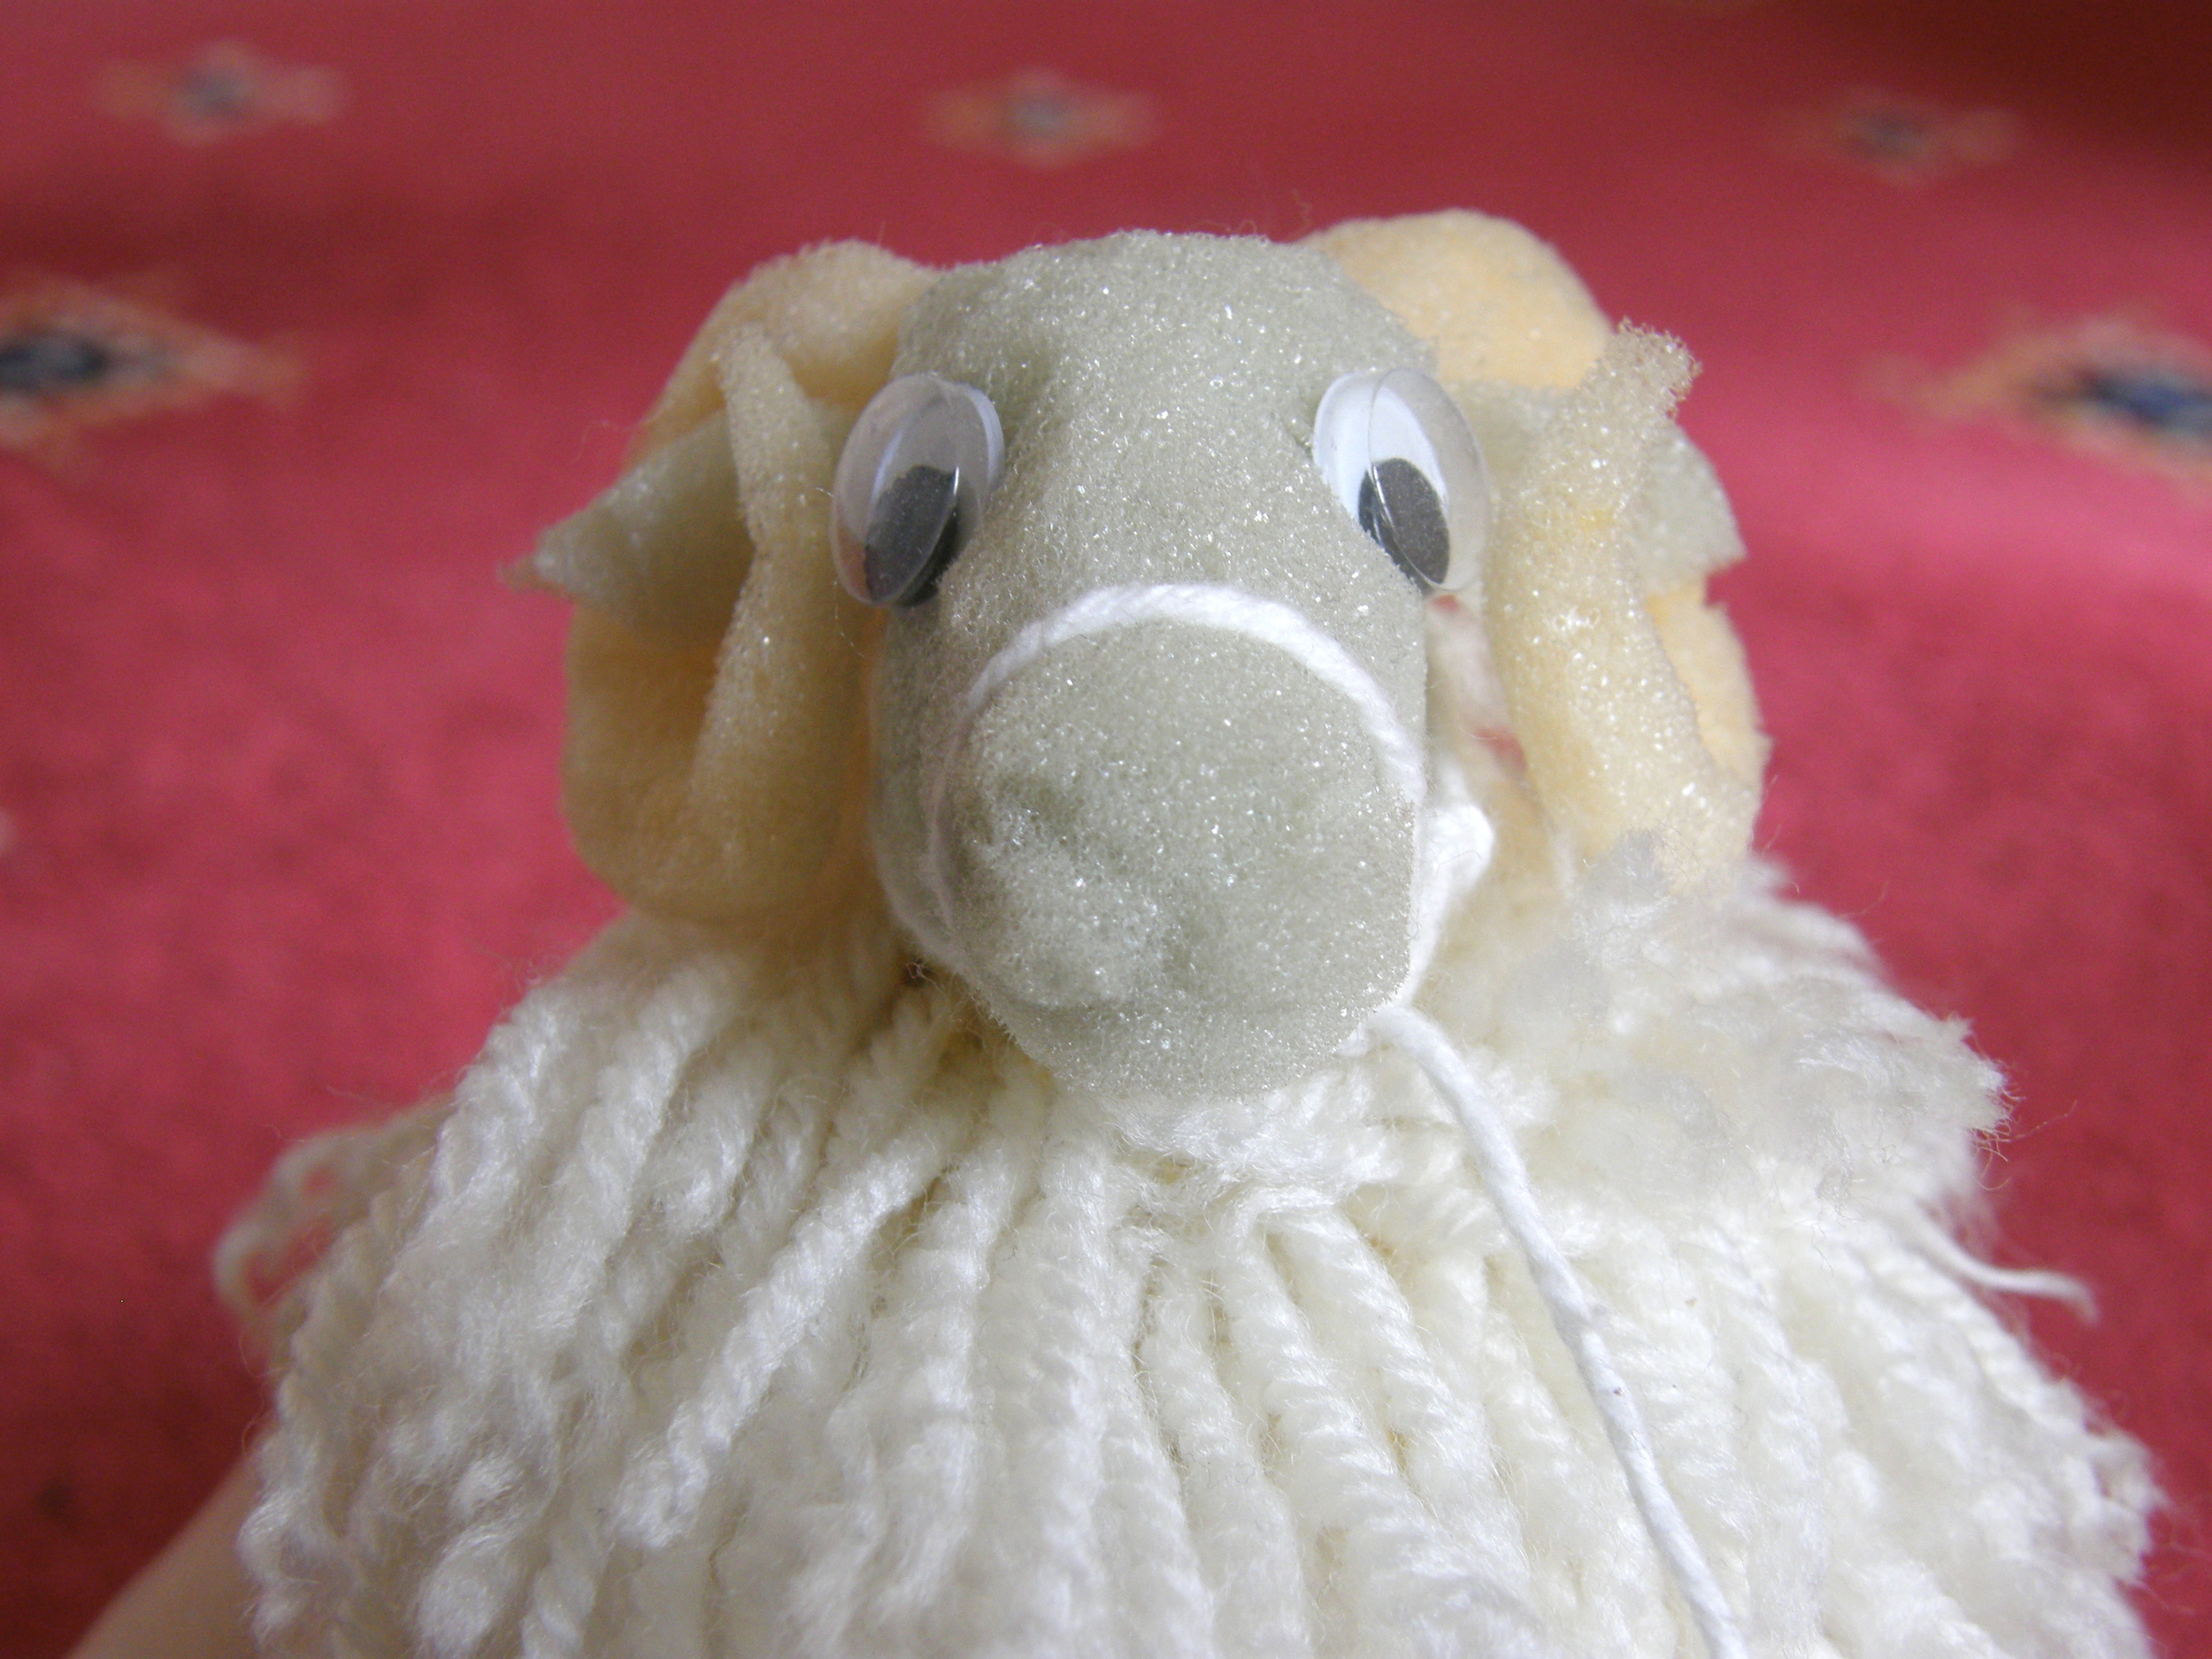 Sponge and Wool Sheep 2